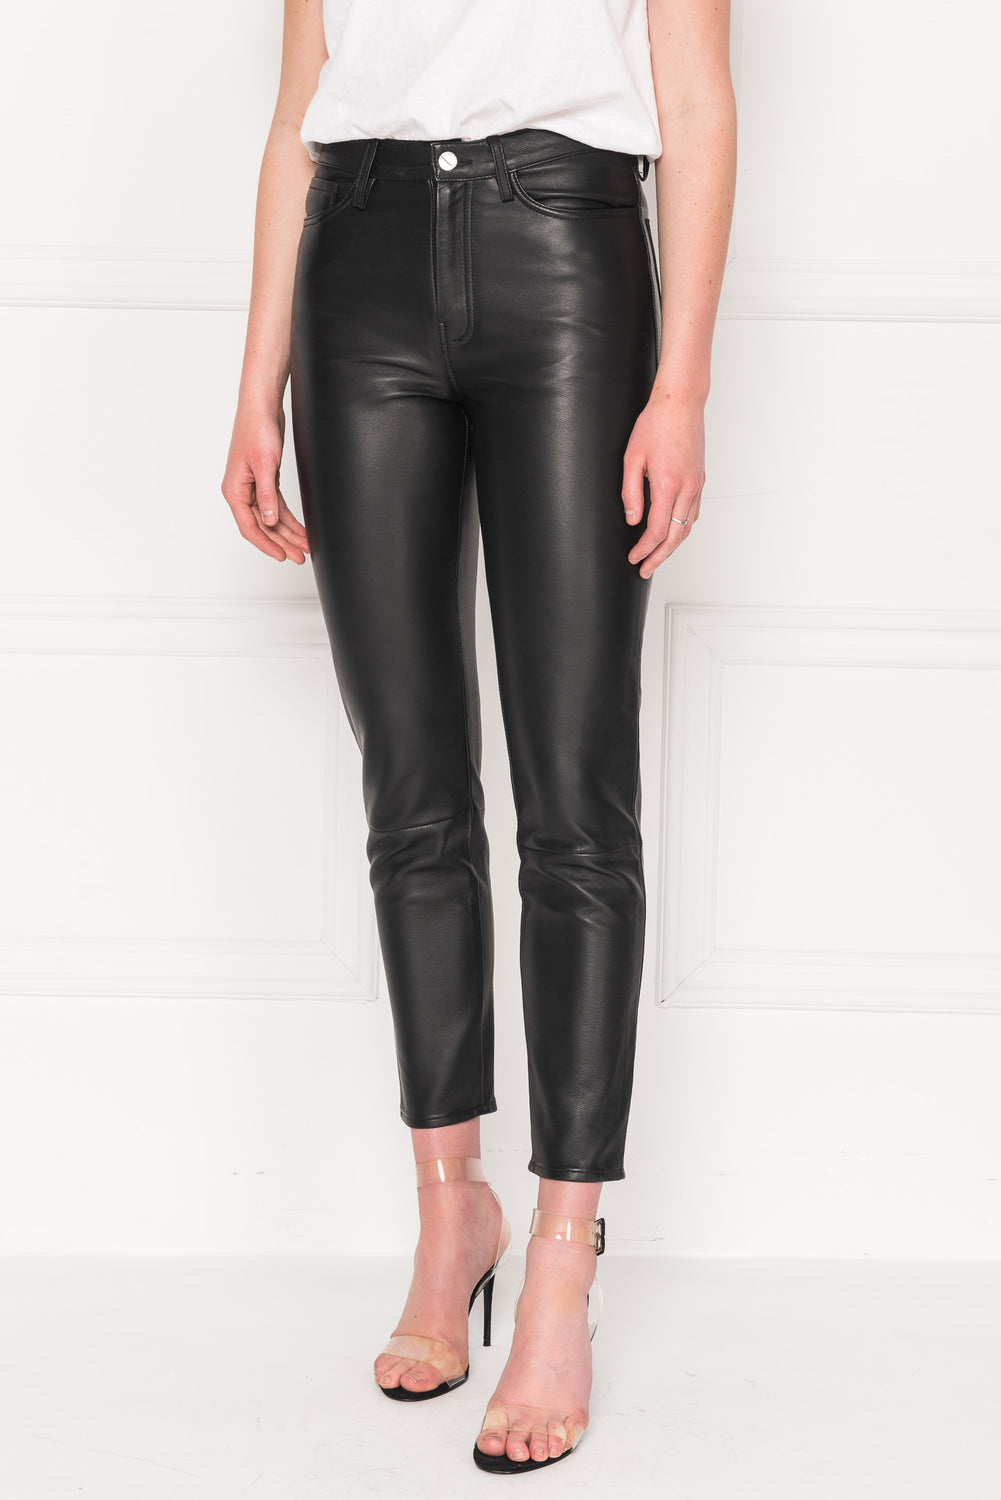 KENNA Black Leather Mom Jeans